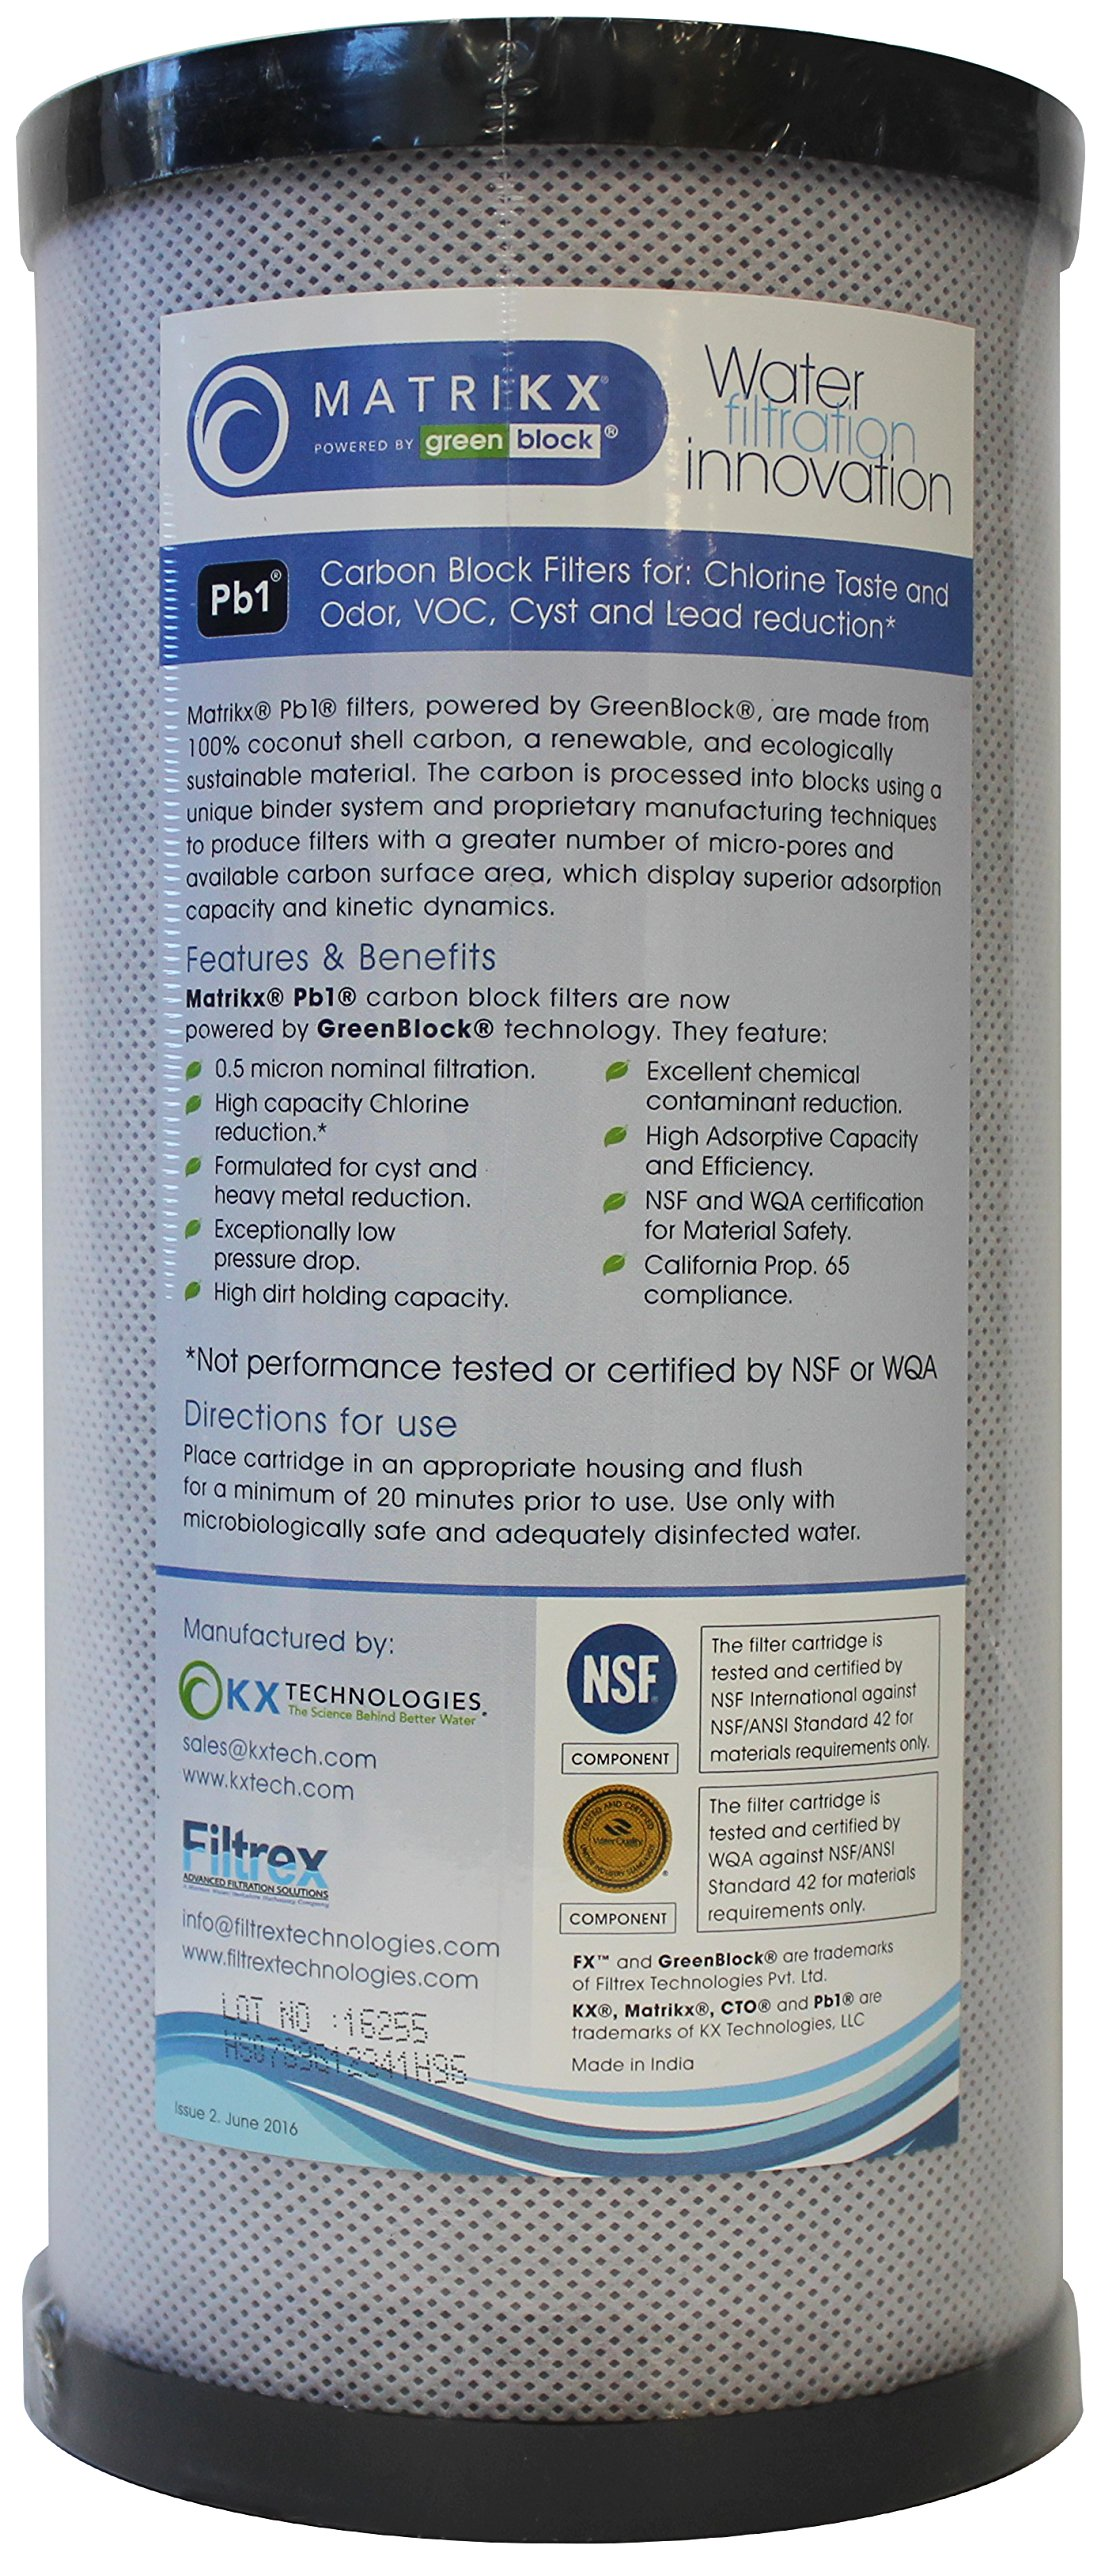 KX 06-450-10-GREEN | 10'' Big Blue Pb1 Carbon Block Filters for Chlorine Taste and Odor, VOC, Cyst and Lead Reduction | KX MatriKX Powered by GREENBLOCK | Replaces 06-425-125-975